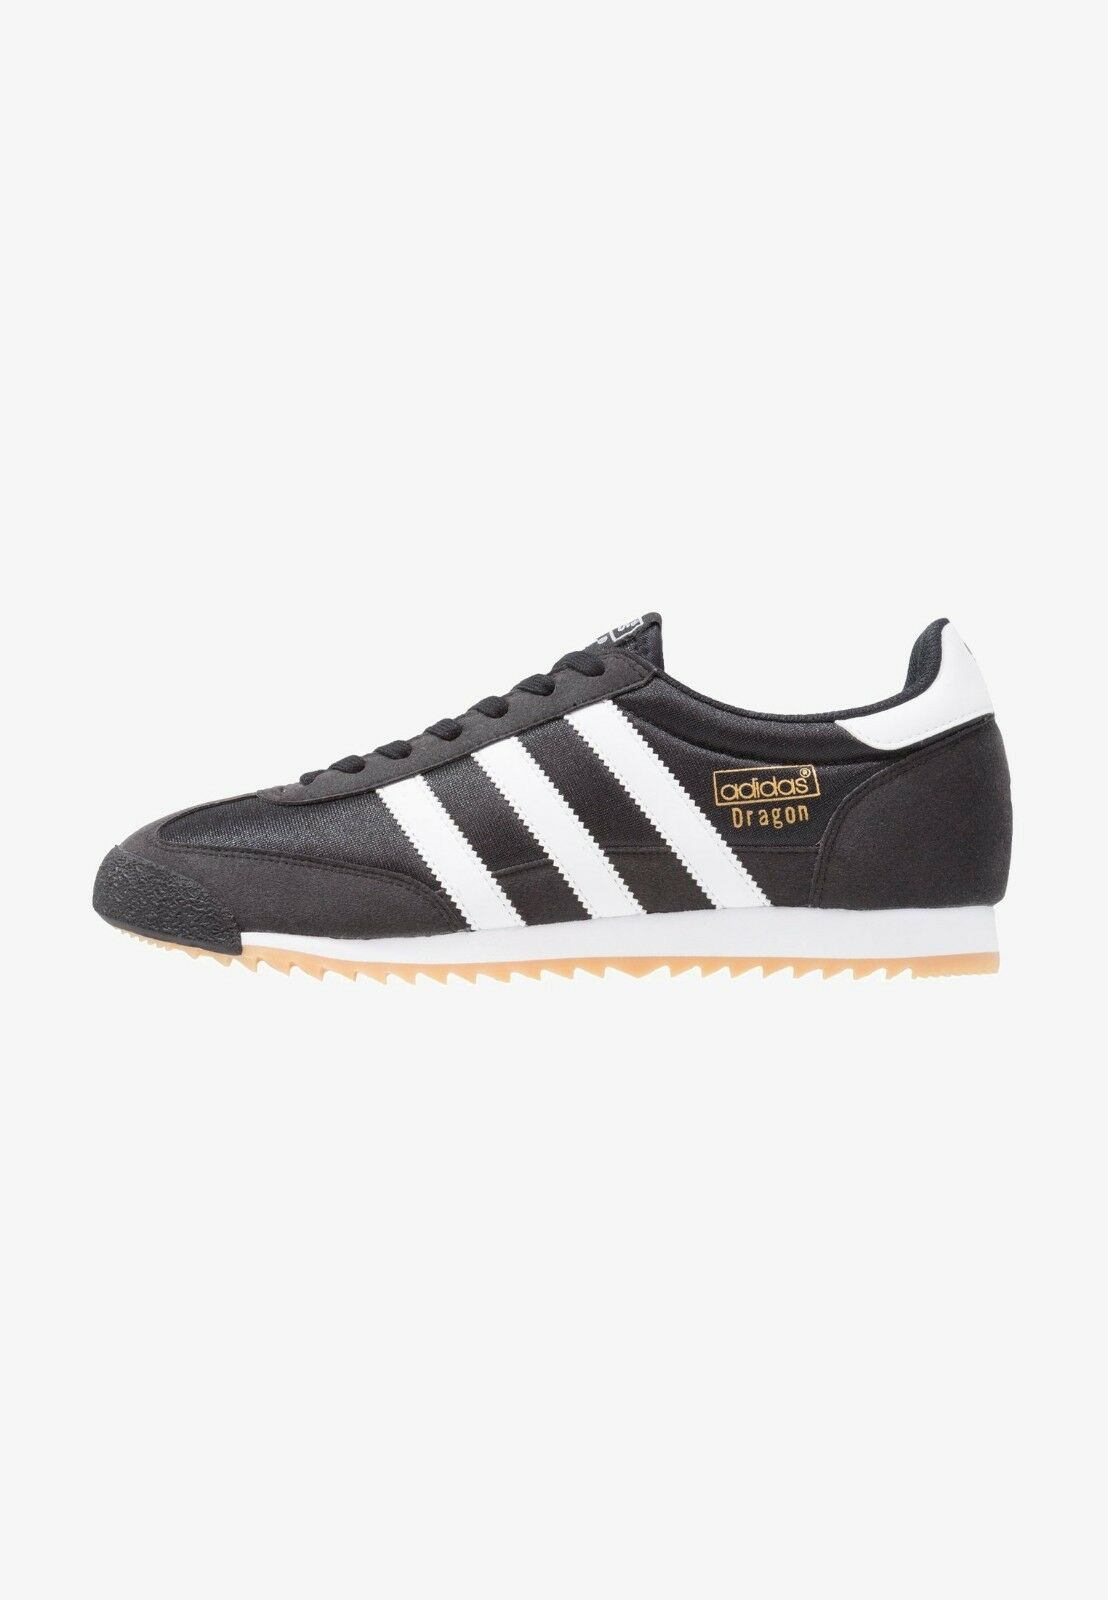 ADIDAS ORIGINALS hommes DRAGON OG noir TRAINERS NEW+BOXED SIZE SIZE SIZE 3.5,4,4.5,5 WOW 8a6a9a